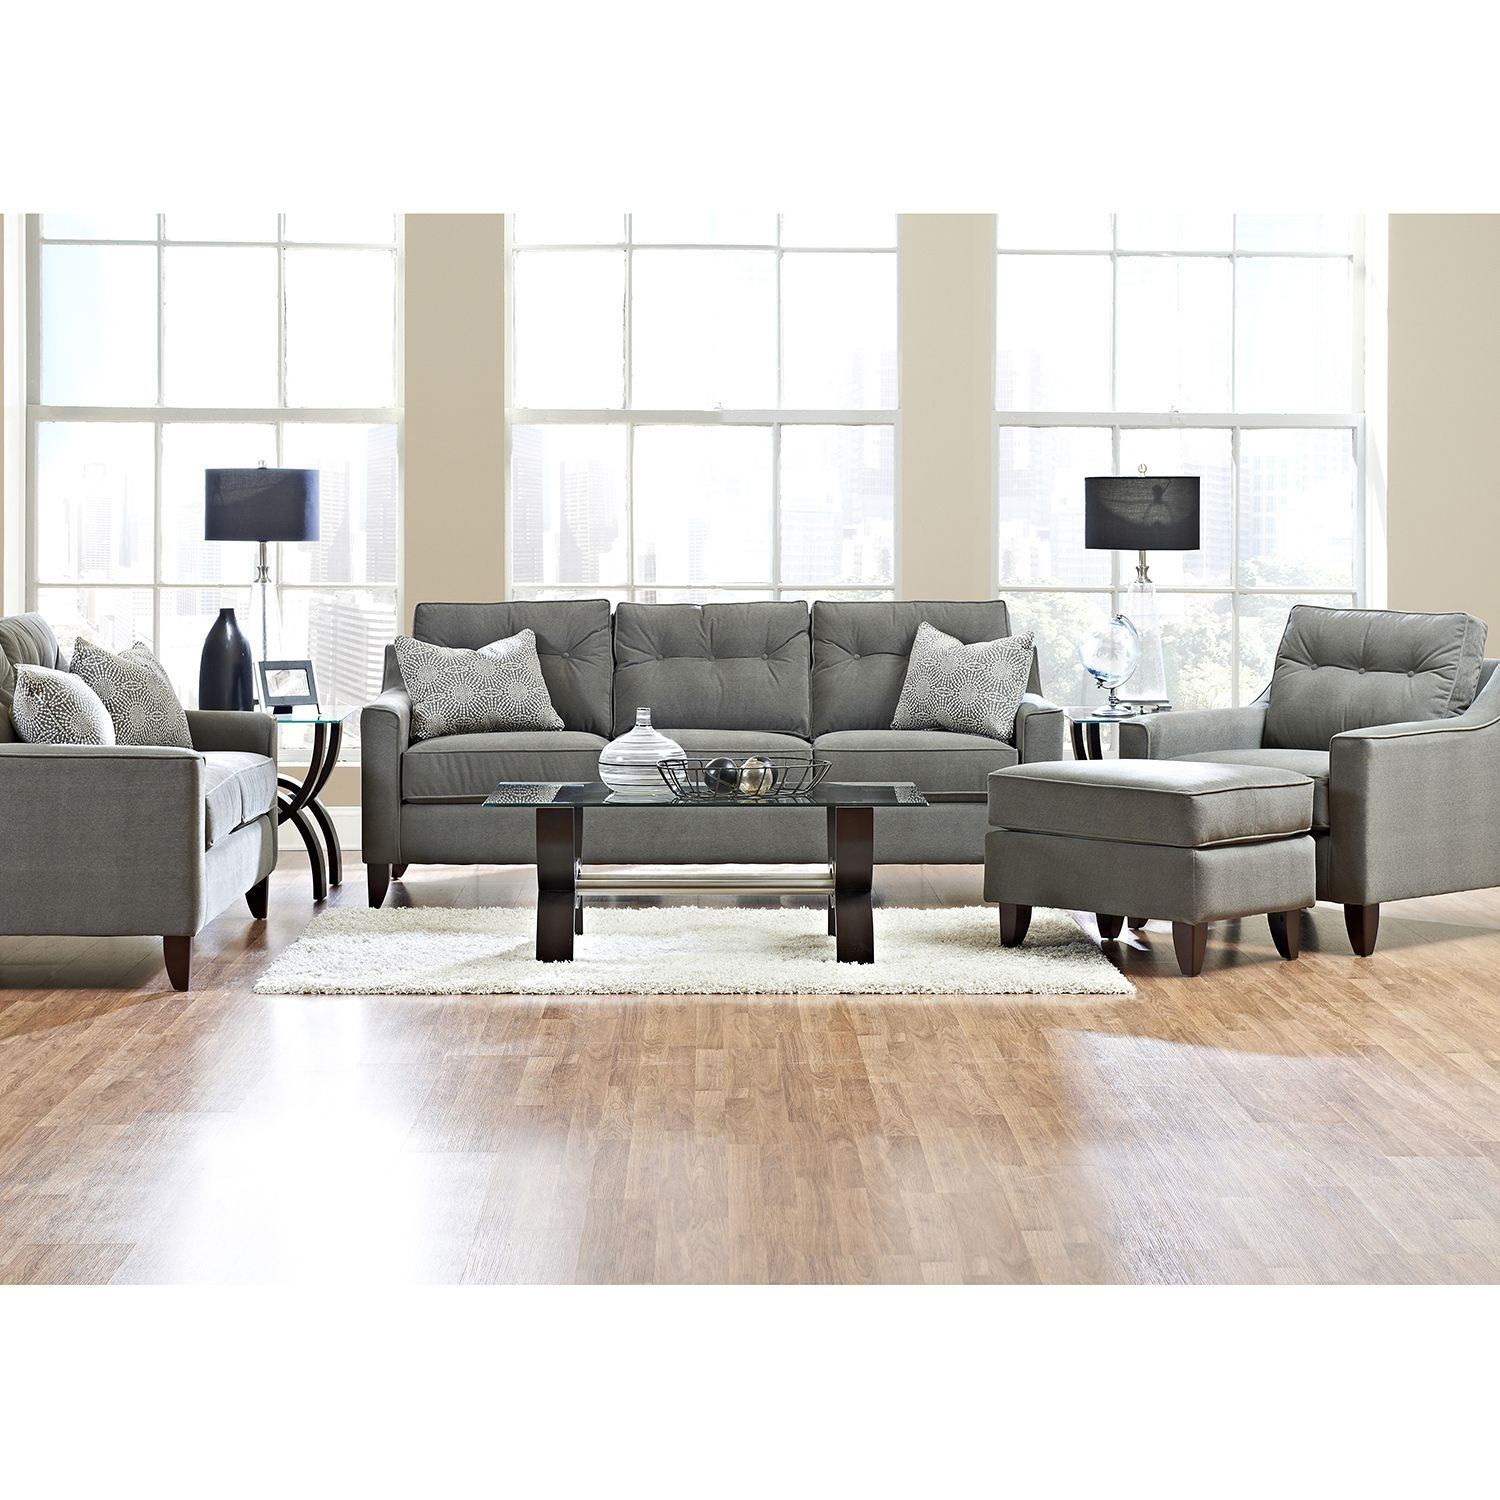 Prestige Aaron Sofa, Loveseat, Chair And Ottoman Collection – Boutiqify In Sectional Sofas At Aarons (View 10 of 10)